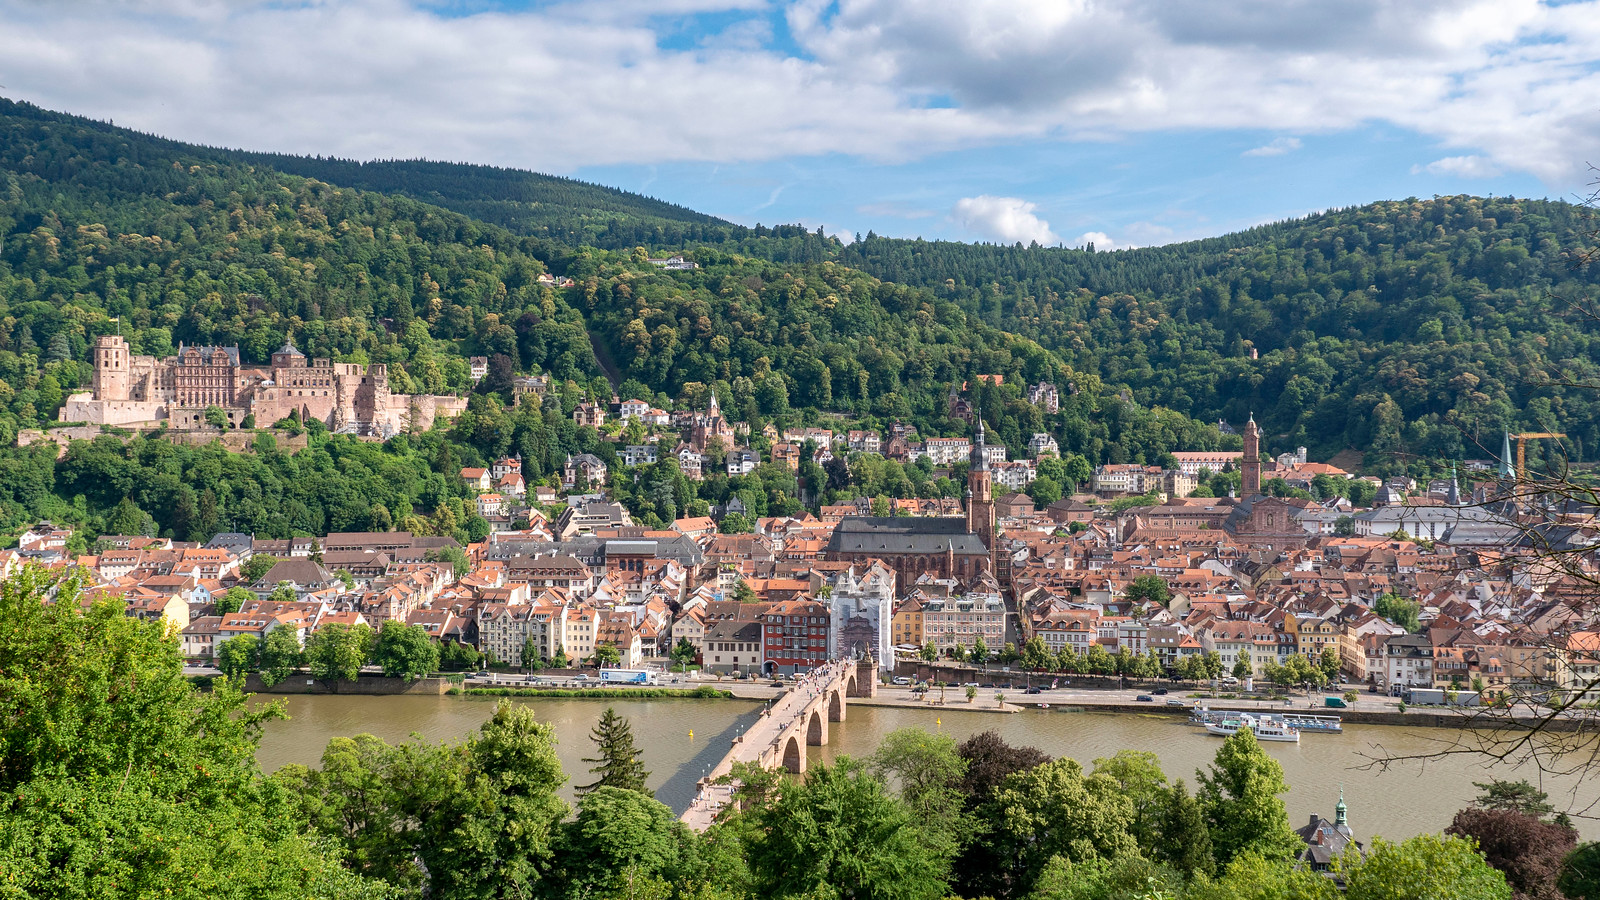 Spectacular Things to Do in Heidelberg Germany - The Philosopher's Walk (Philosophenweg)